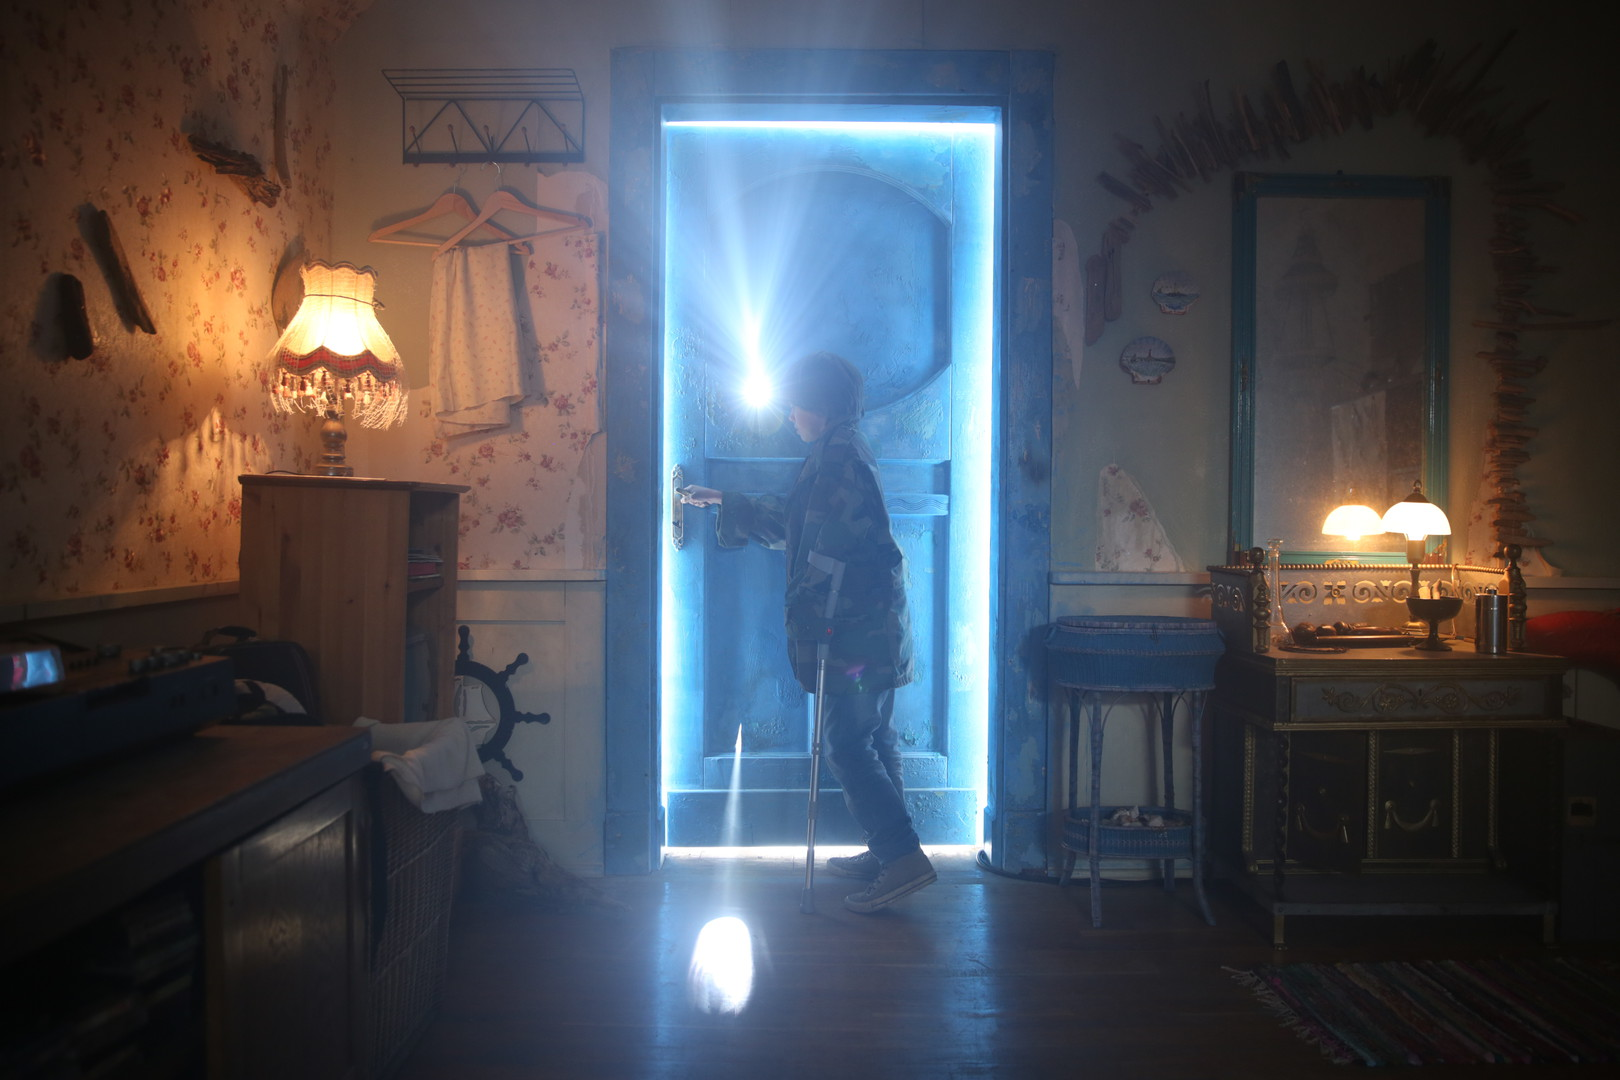 Behind The Blue Door is a touching film that takes on delicate subjects and leaves the viewer pondering afterward. I found myself wanting to go back and ... & Behind The Blue Door u2013 The Utah Film Festival and Awards